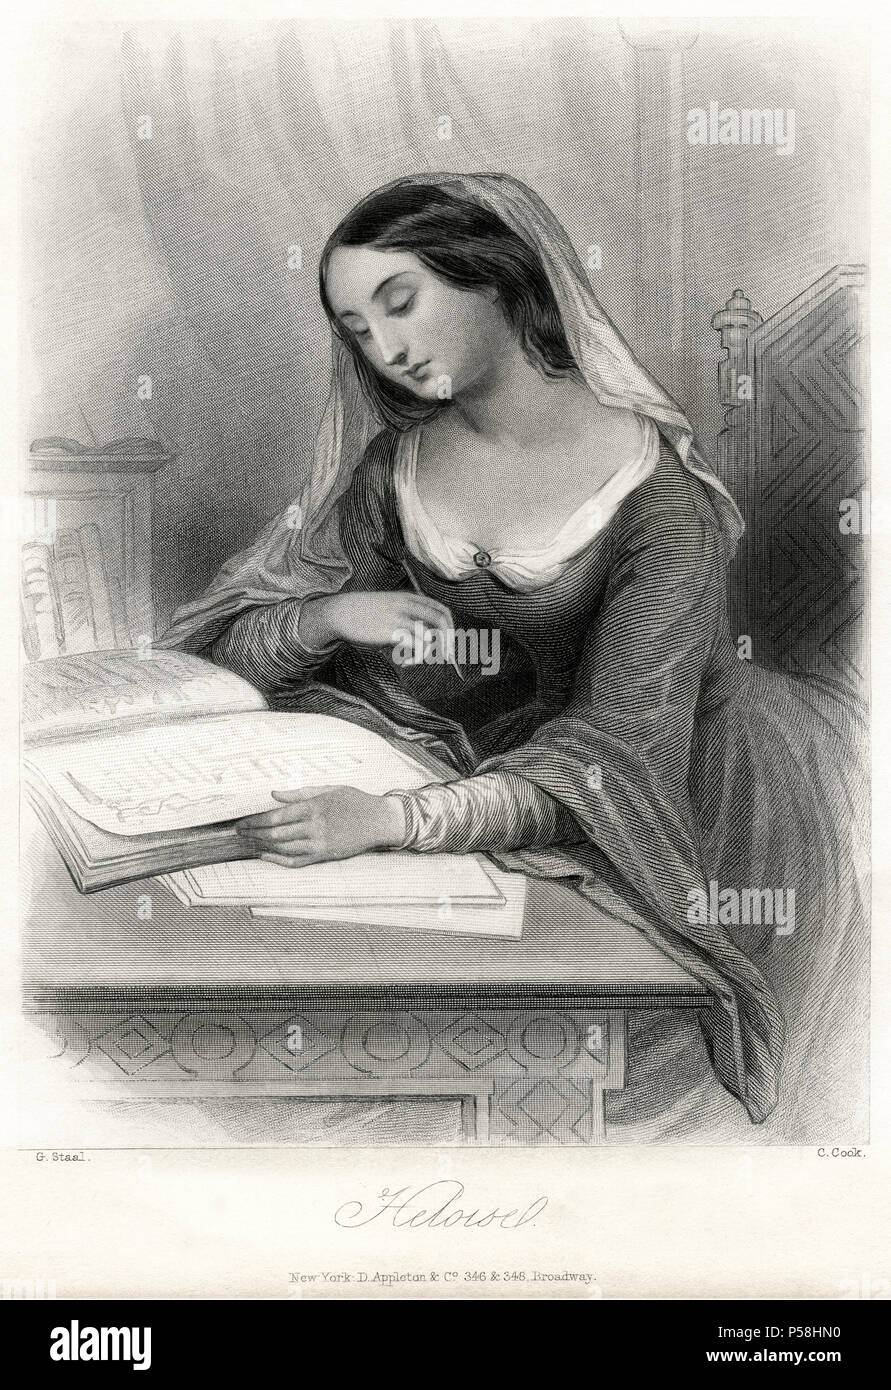 Heloise, French Nun, Writer and Scholar, Best Known for her Love Affair with Peter Abelard, Portrait, mid-19th Century Engraving - Stock Image